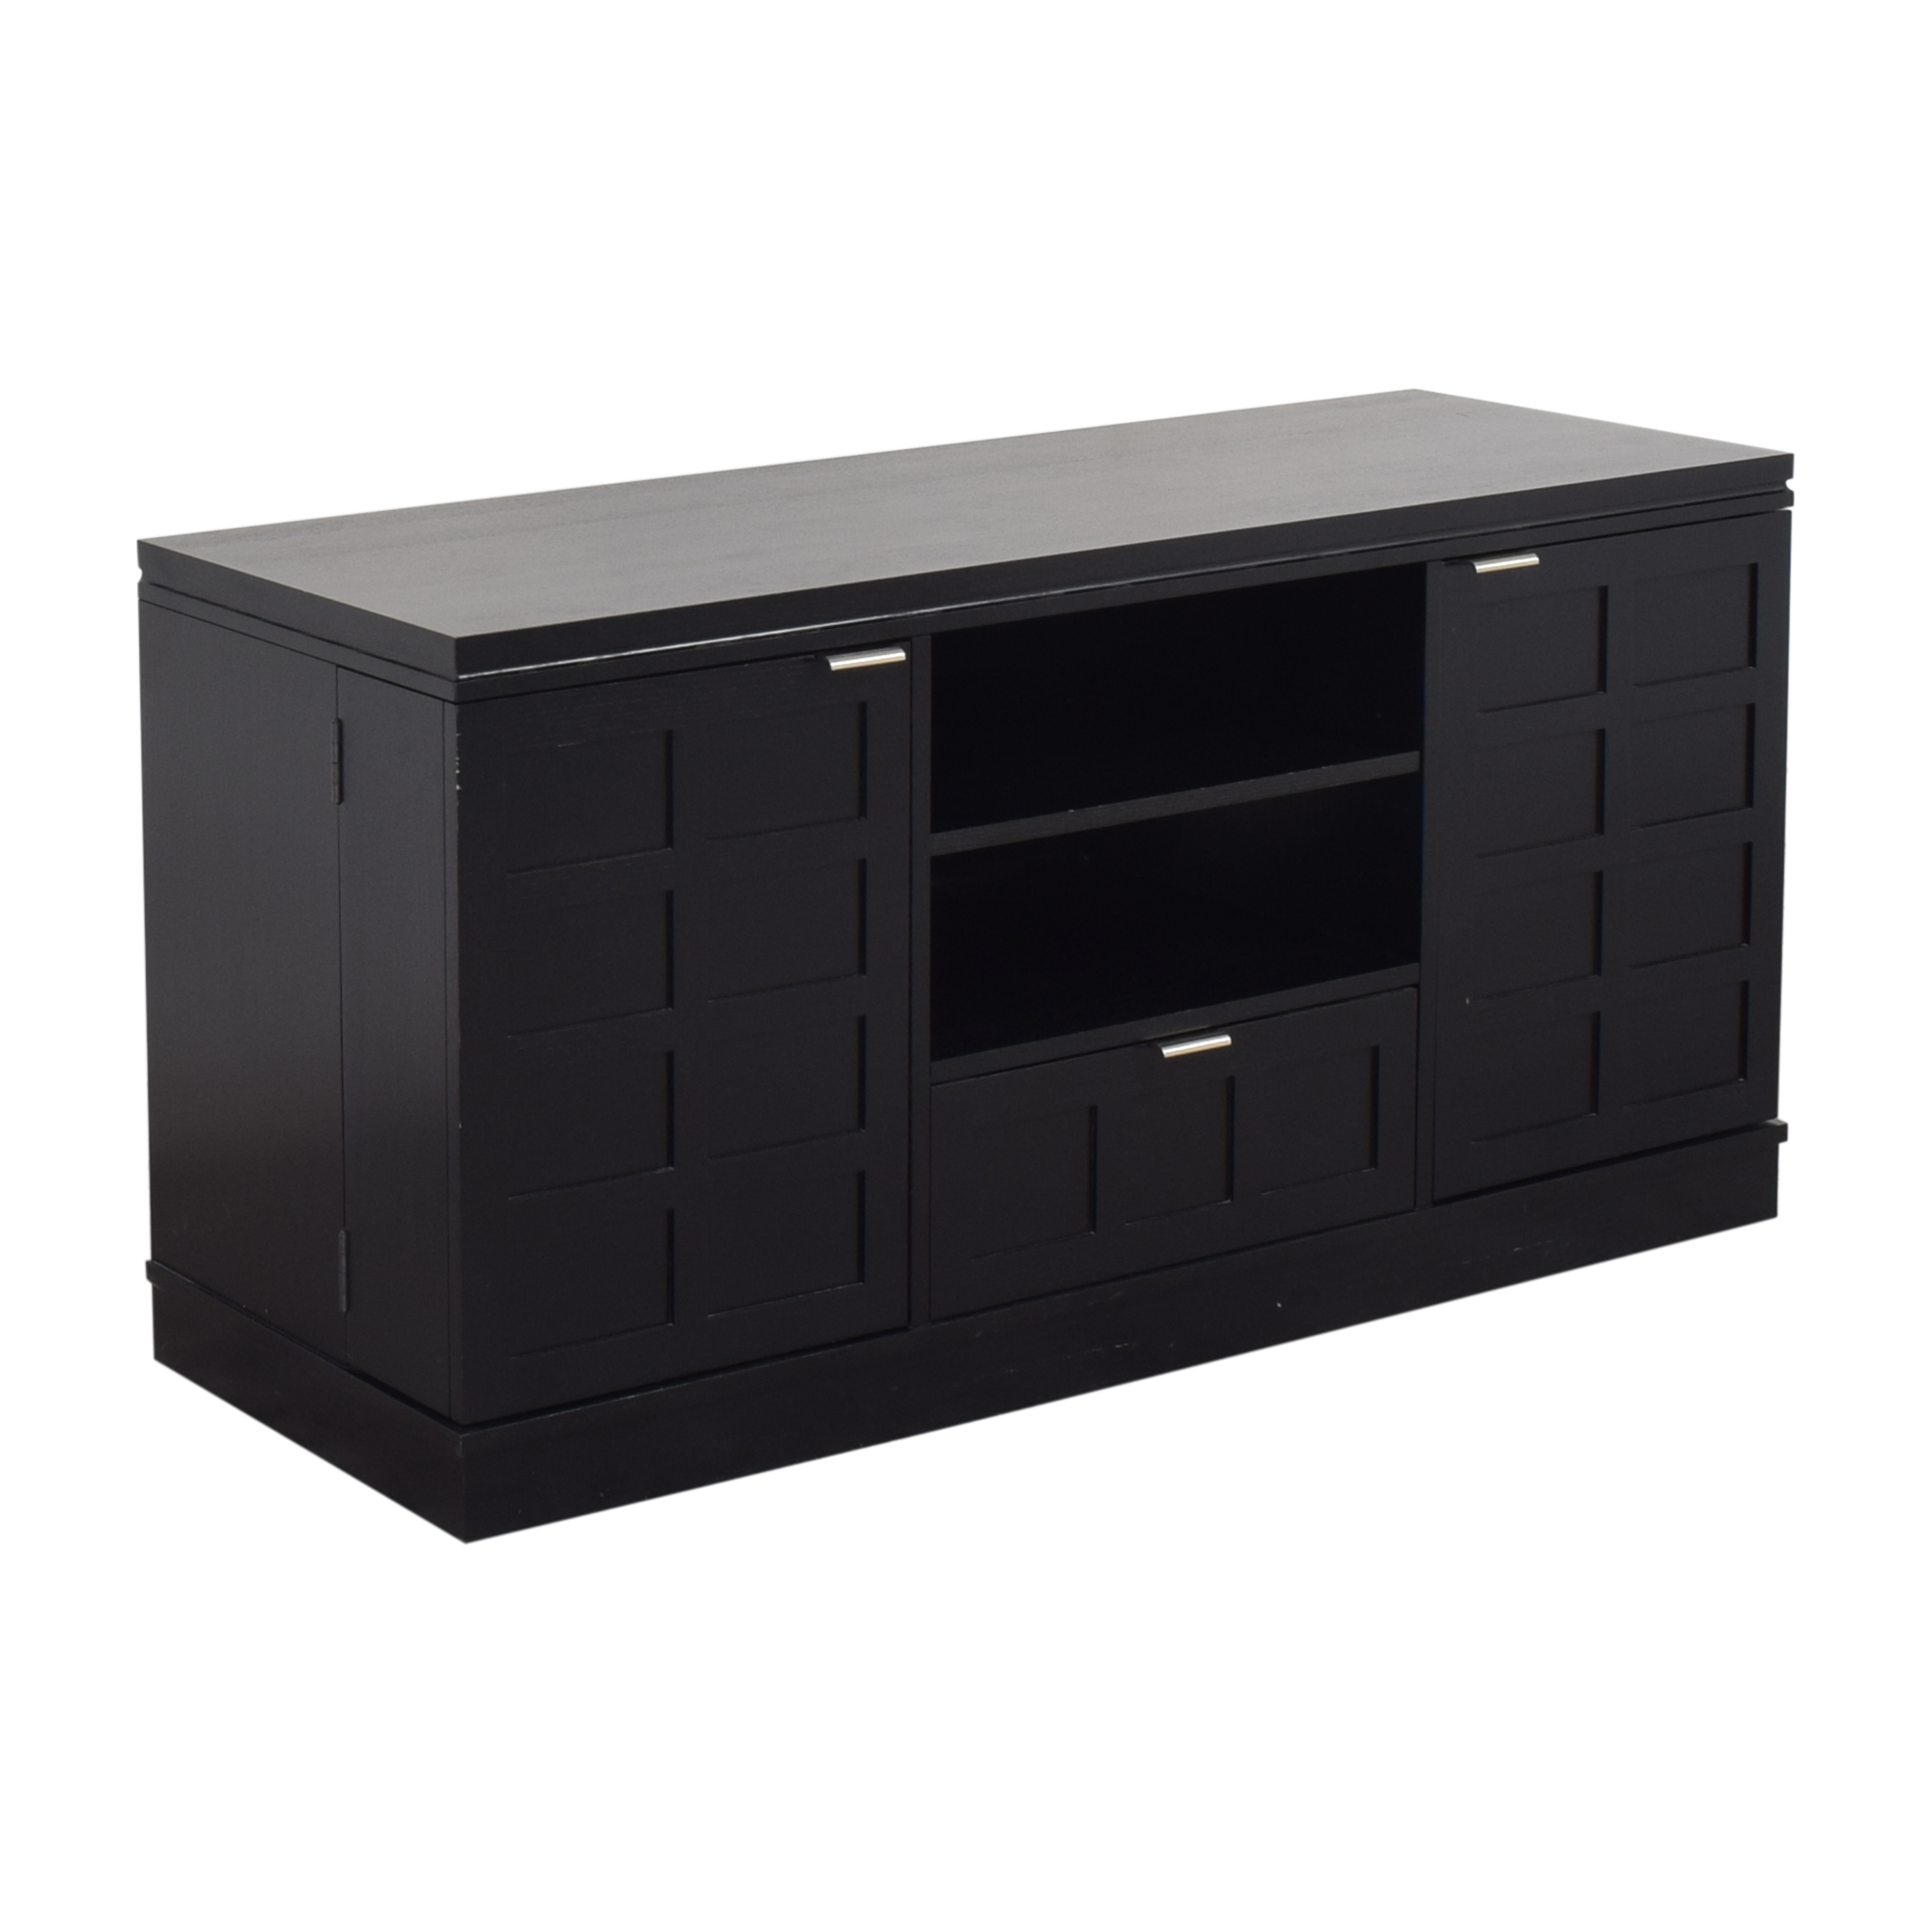 Crate & Barrel Crate & Barrel Arcade Media Cabinet Storage